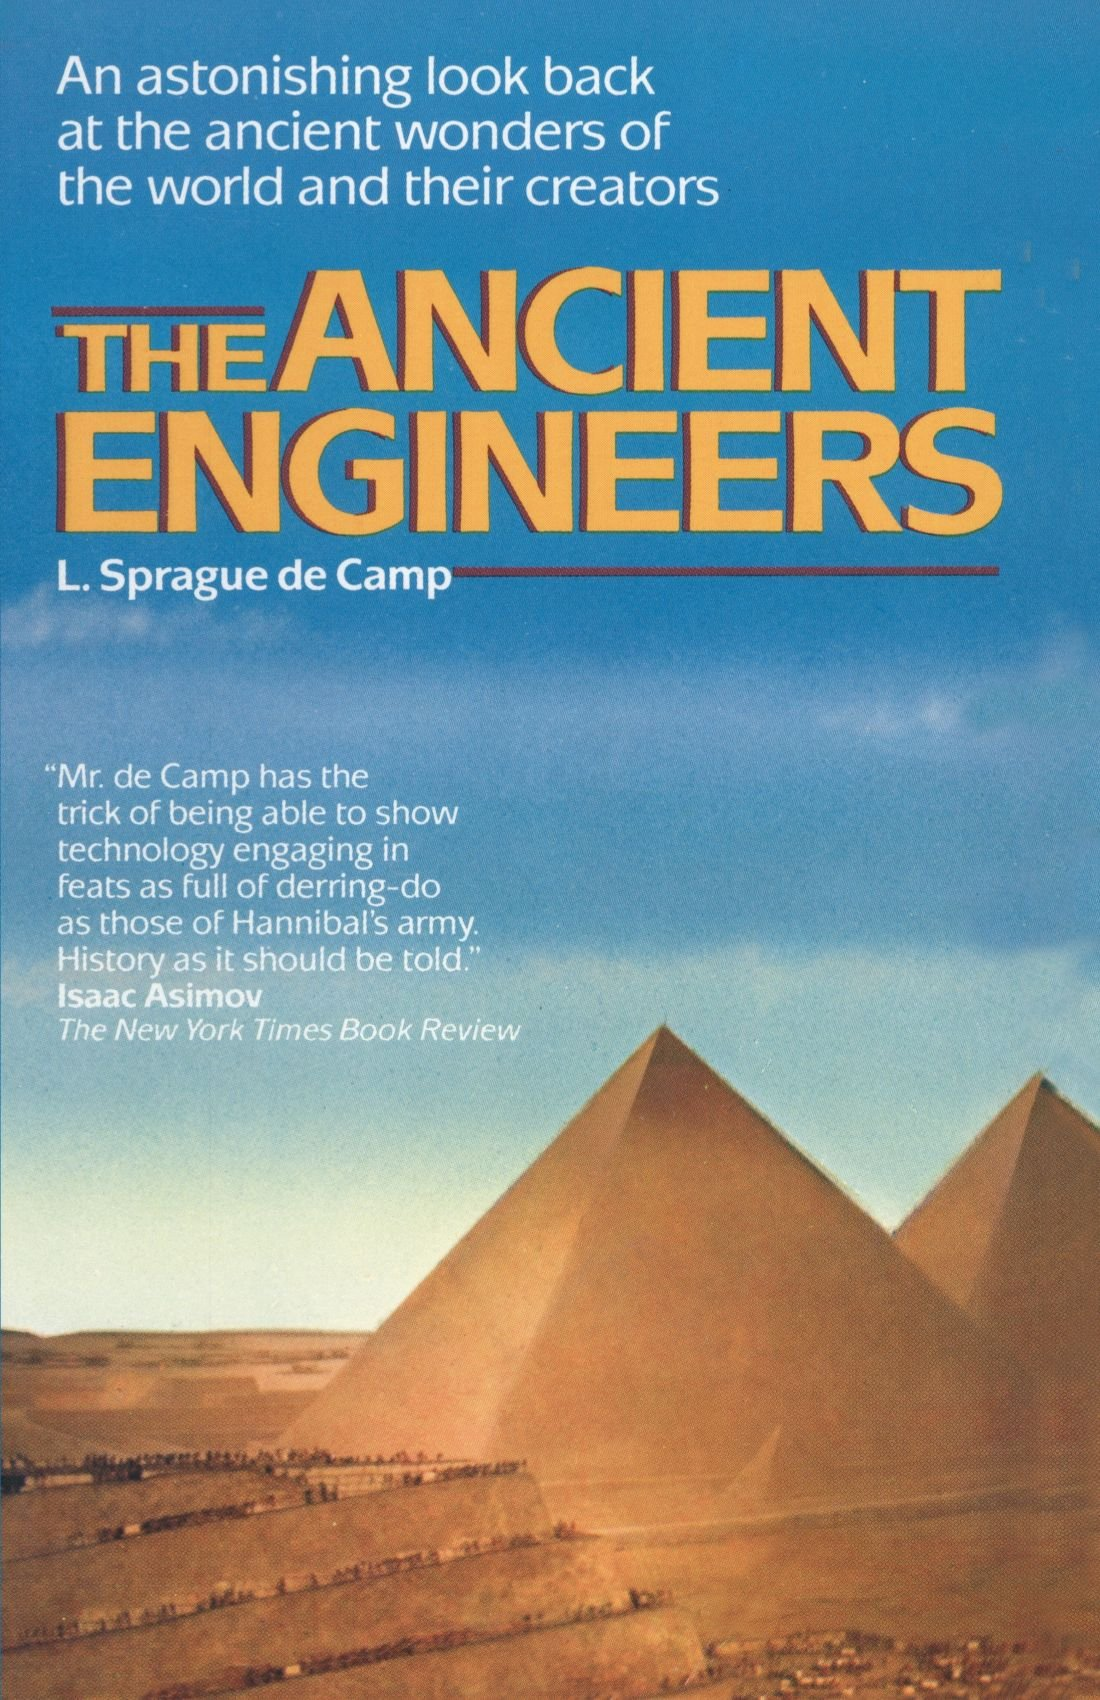 The Ancient Engineers, Sprague De Camp, L.